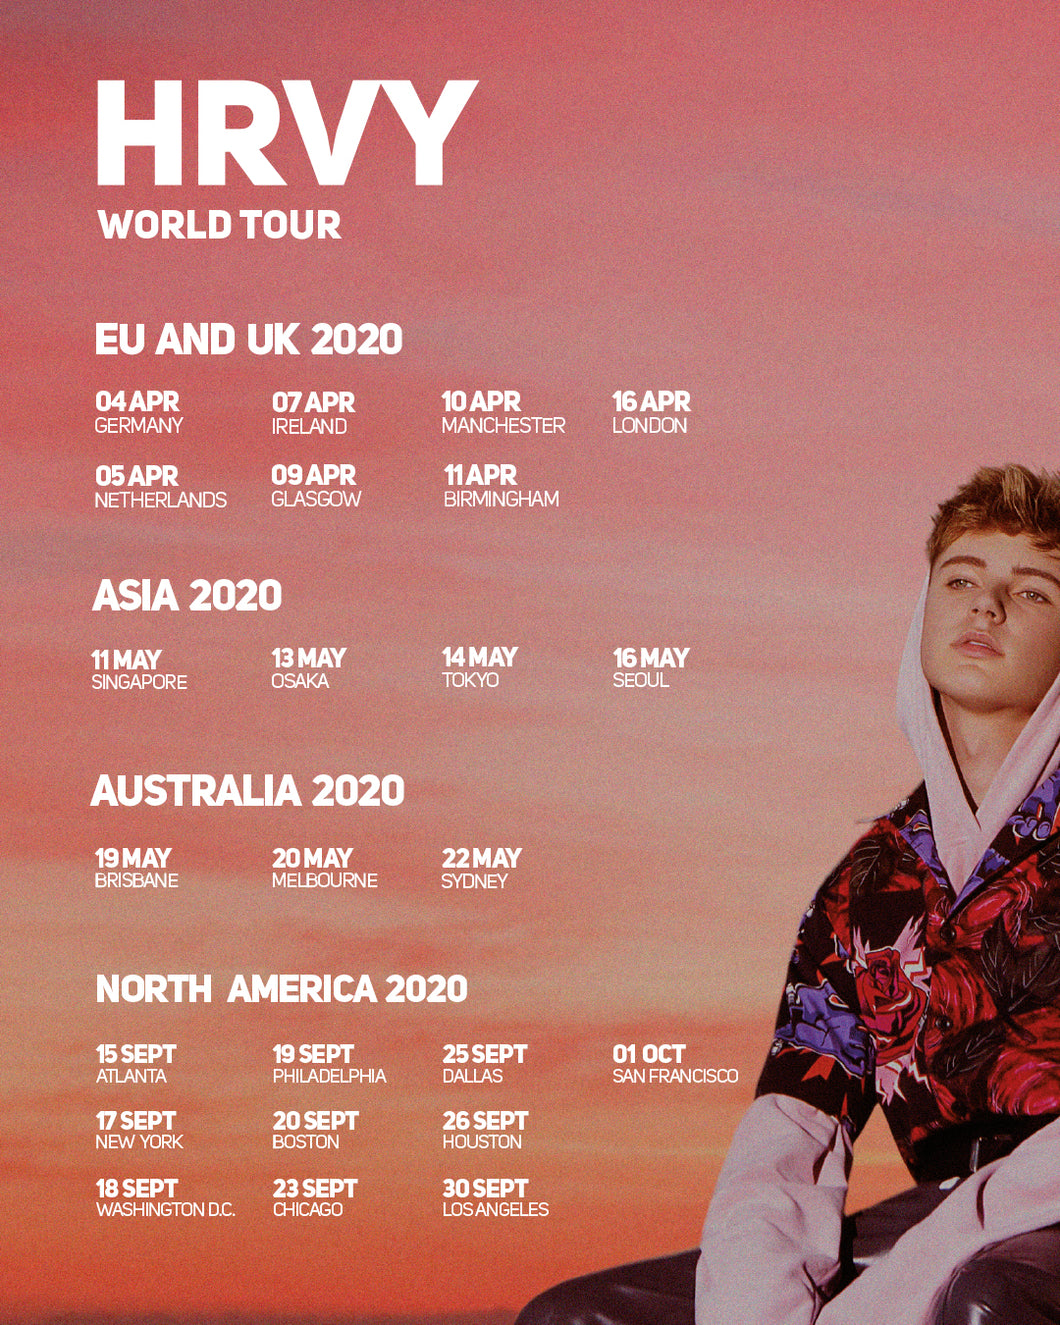 05/11/20 - Singapore - Scape Ground Theatre - HRVY Ticketless Meet & Greet Upgrade Package